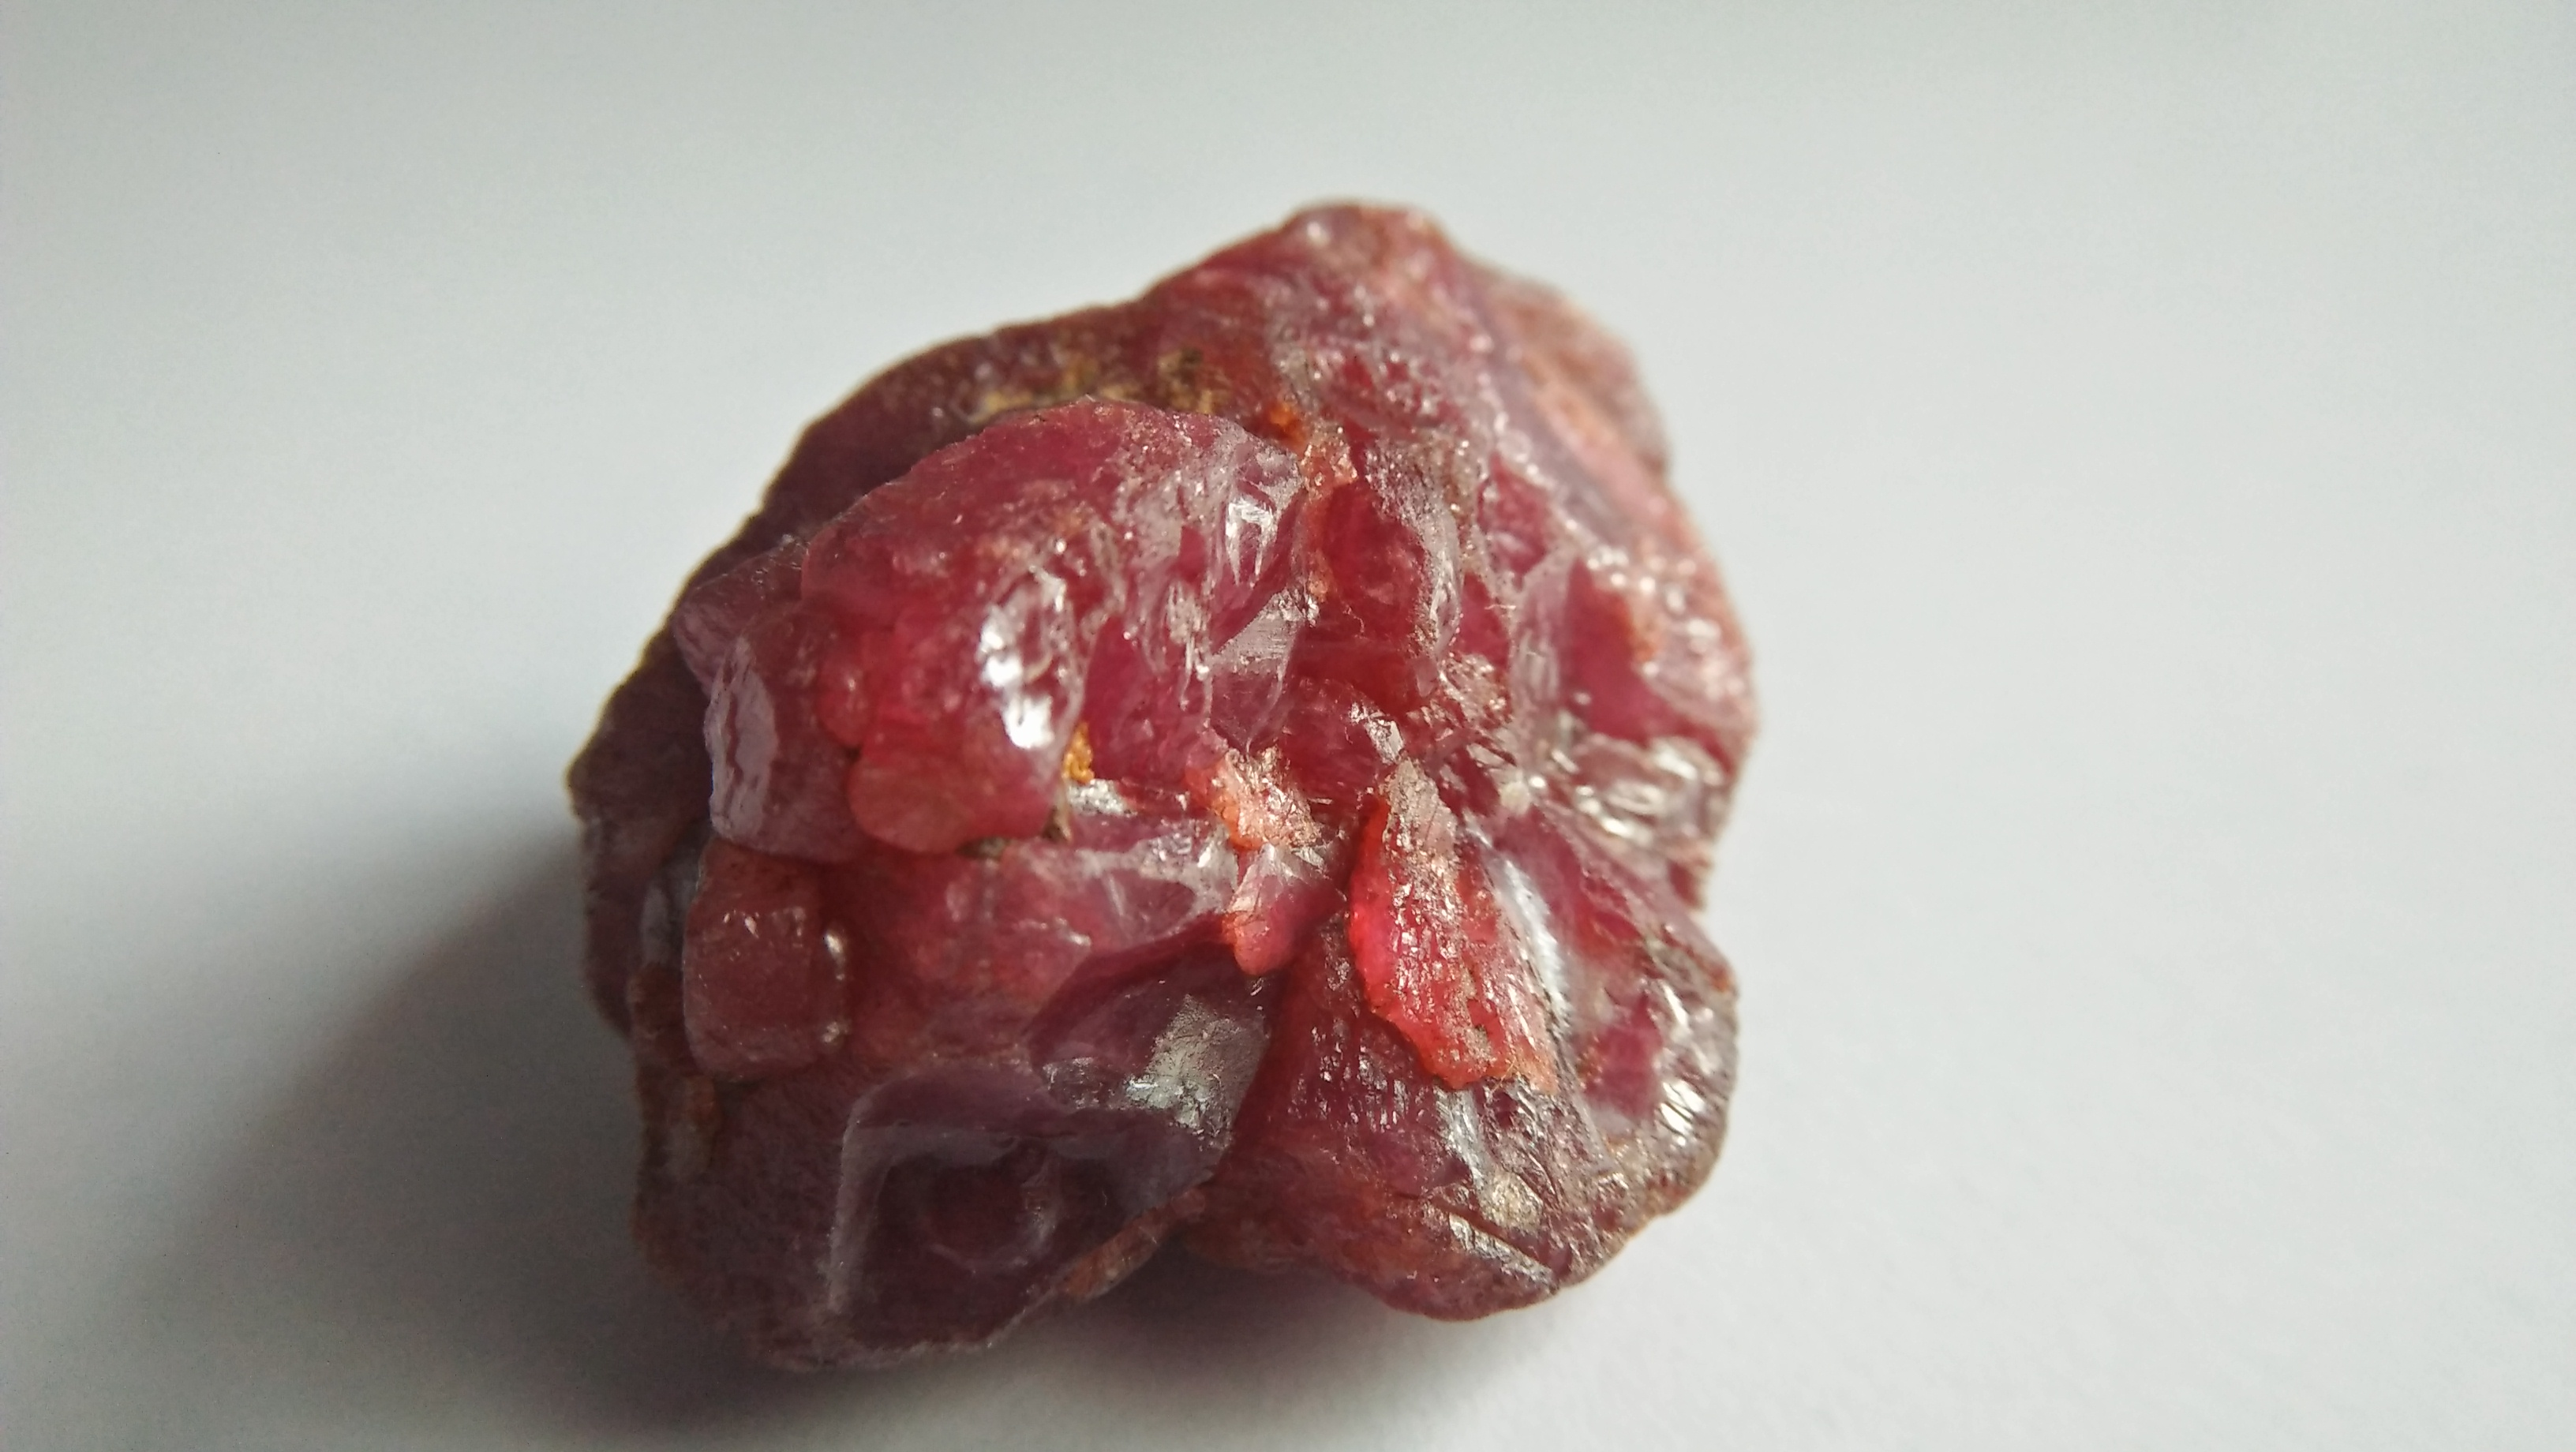 A ruby is a pink to blood-red colored gemstone, a variety of the mineral corundum. Other varieties of gem-quality corundum are called sapphires. Category: Oxide mineral variety Formula: aluminium oxide with chromium, Al2O3:Cr Crystal system: Trigonal Crystal class: Hexagonal Mohs scale: hardness 9.0 Luster: Subadamantine, vitreous, pearly Specific gravity: 3.97 – 4.05 Optical properties: Uniaxial - Refractive index: nω=1.768–1.772 nε=1.760–1.763 Ruby is a powerful stone to shield against negative energy, psychic attack, and energy vampirism, especially of the heart energy.Ruby is a stone of Divine creativity. It boosts your energy levels and promotes high self-esteem, intuition, and spiritual wisdom. According to astrology generally ruby should be worn in ring finger of right hand. Ruby is one of the most popular gemstones, and is used extensively in Jewelry. Ruby is used in all forms of jewelry, including bracelets, necklaces, rings, and earrings.